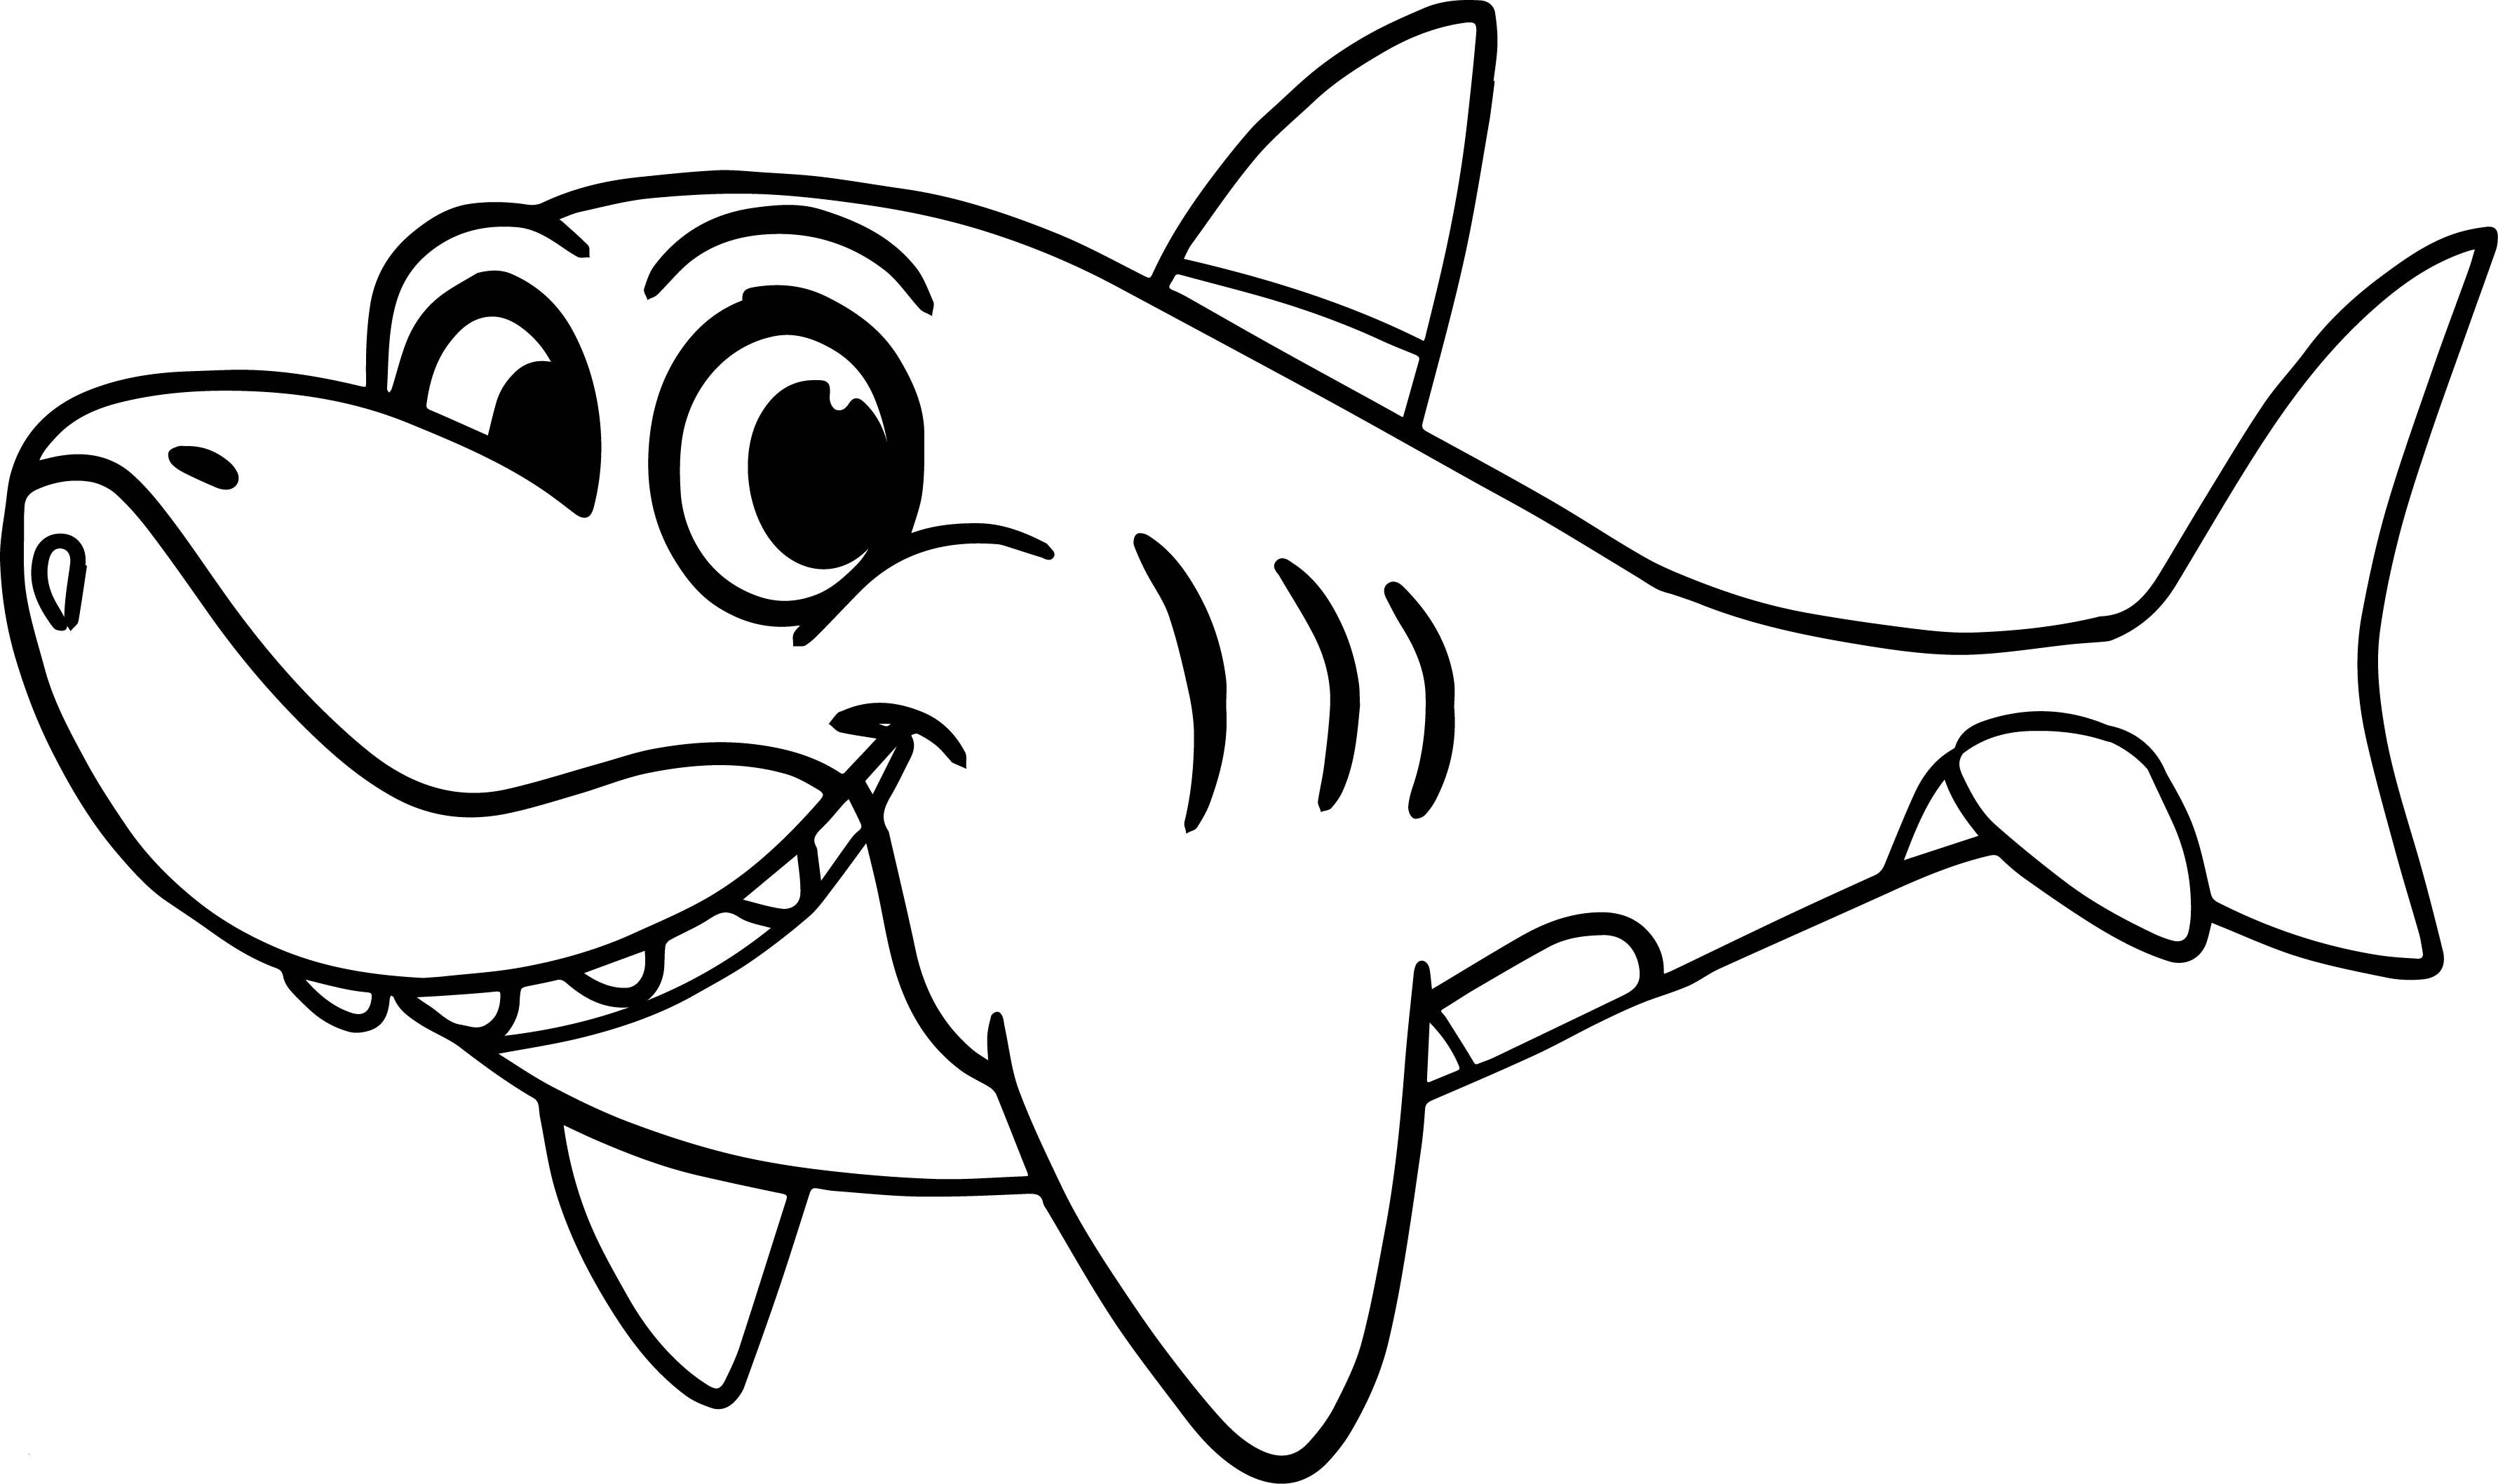 baby shark coloring images baby shark coloring sheet get coloring pages shark images baby coloring